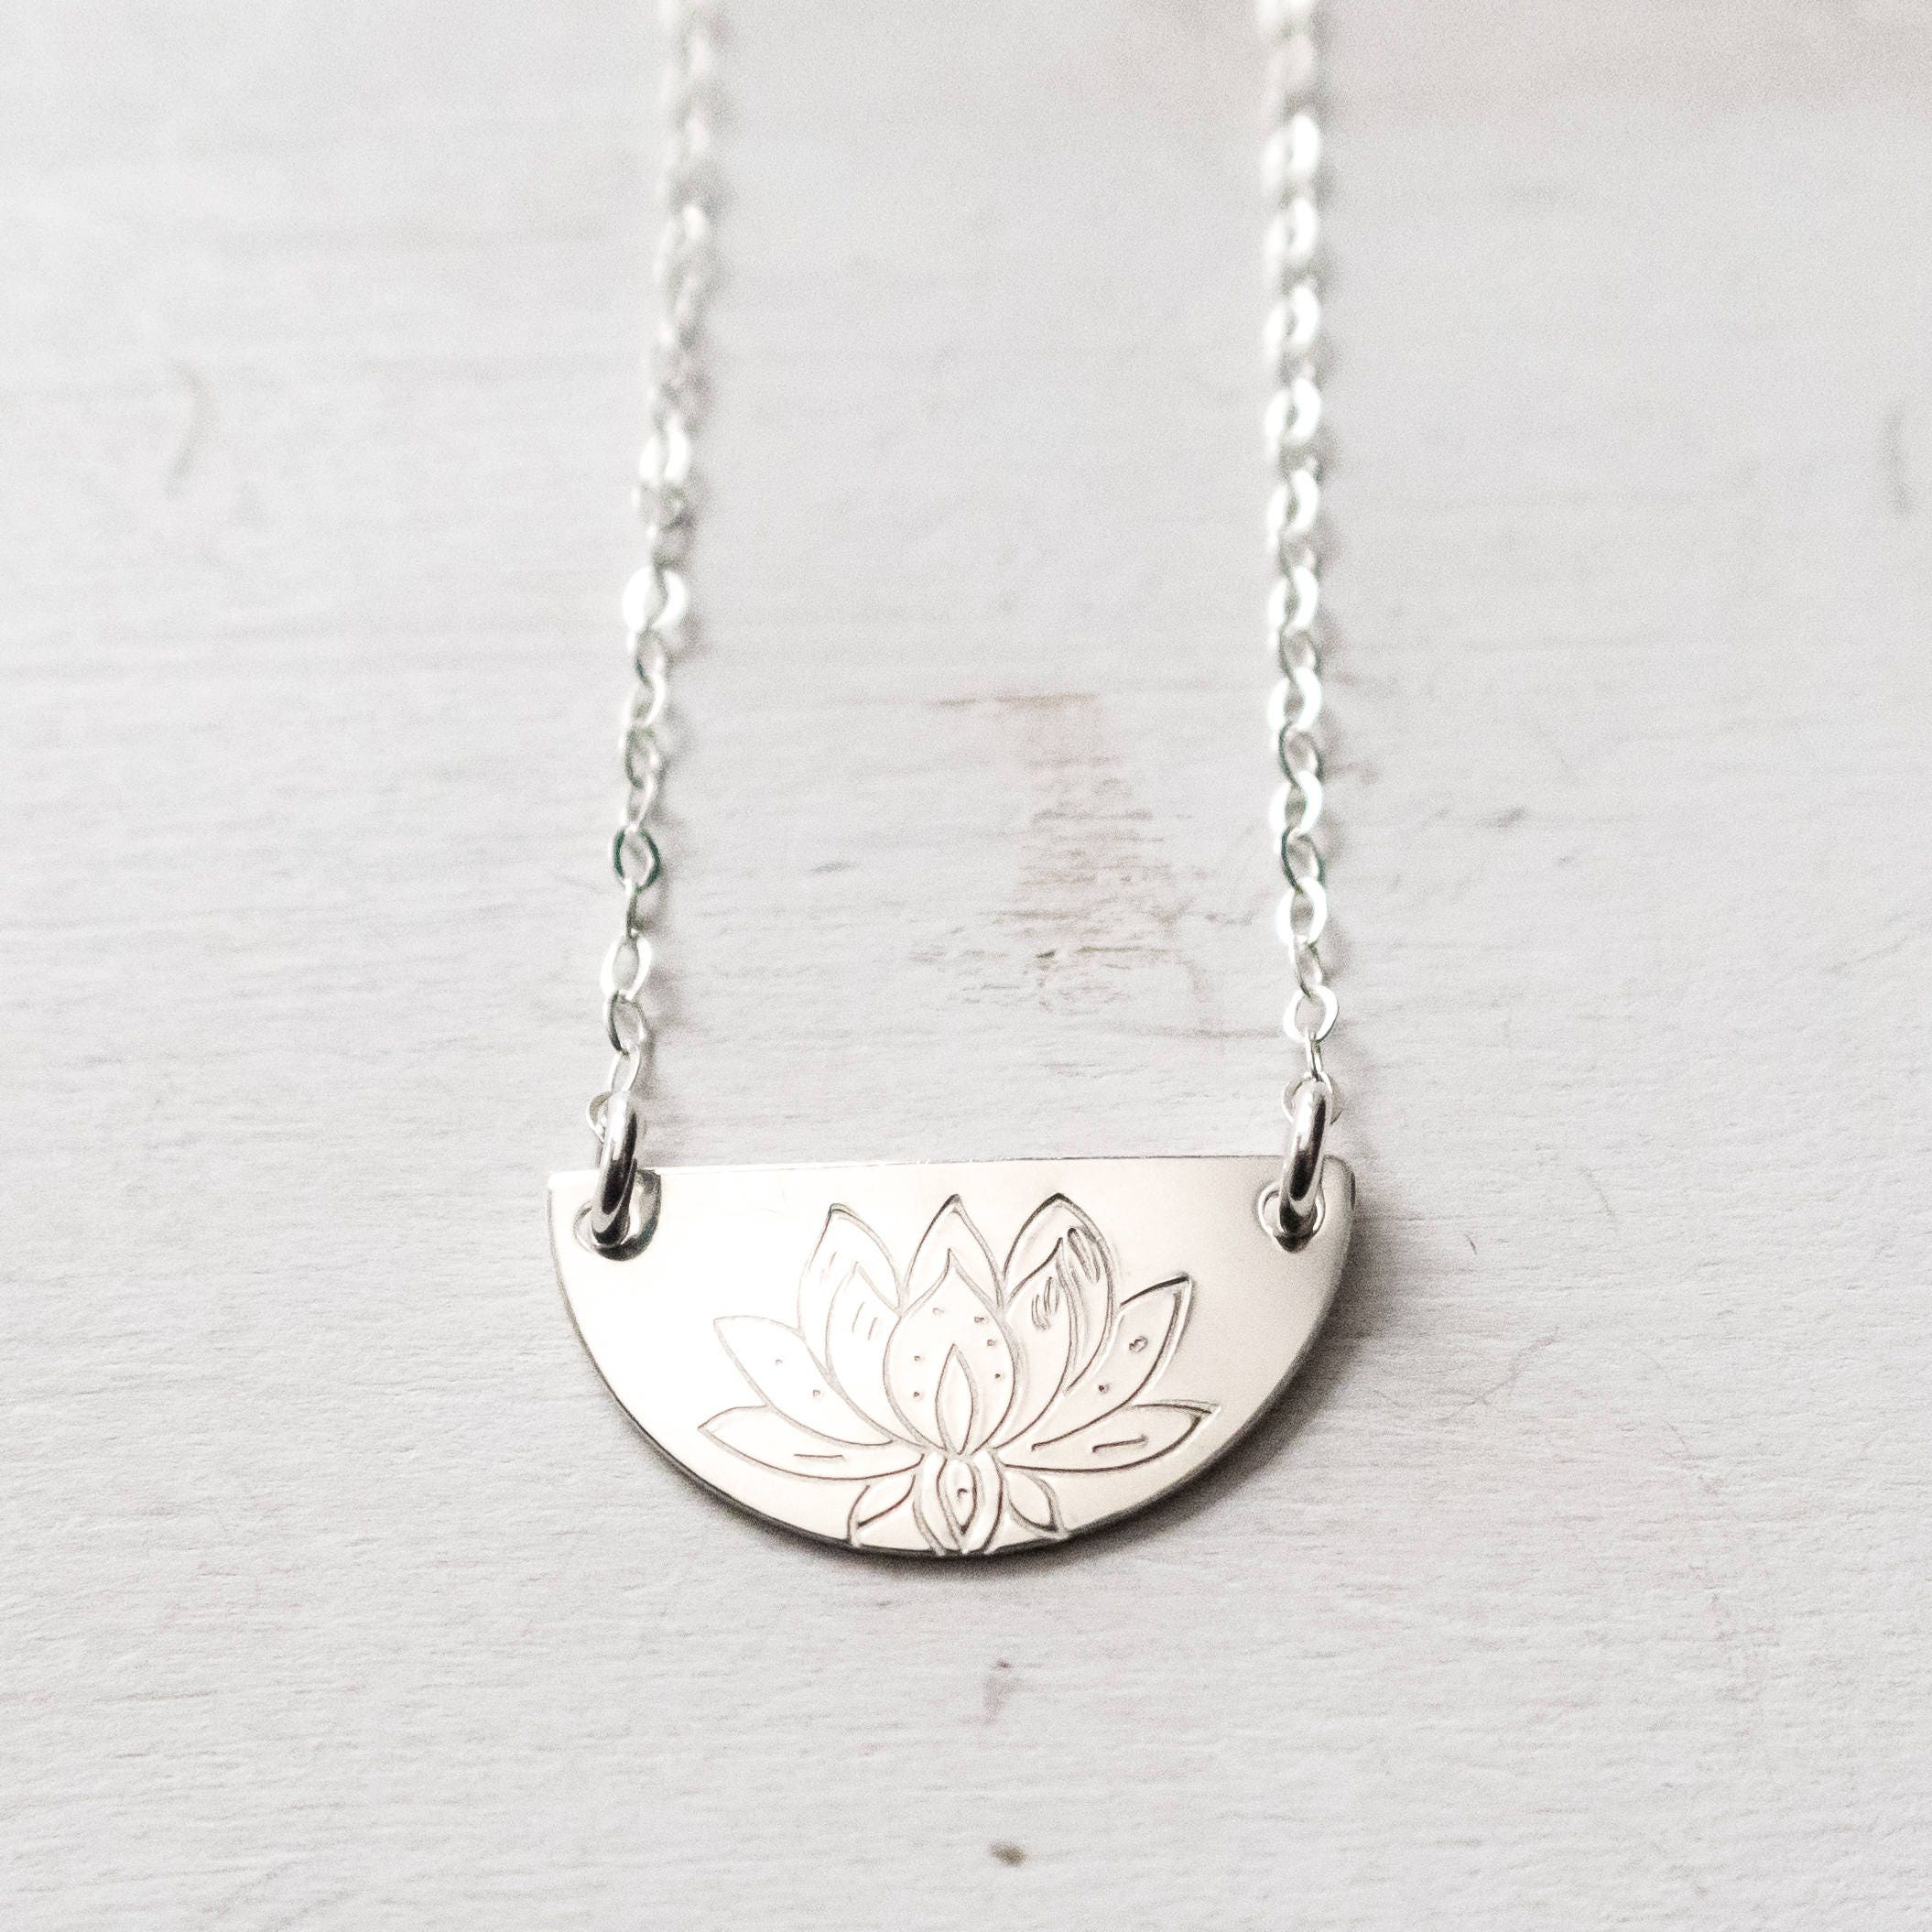 Half moon necklace half circle necklace silver lotus necklace half moon necklace half circle necklace silver lotus necklace modern boho layering necklace lotus flower gift for her sterling silver izmirmasajfo